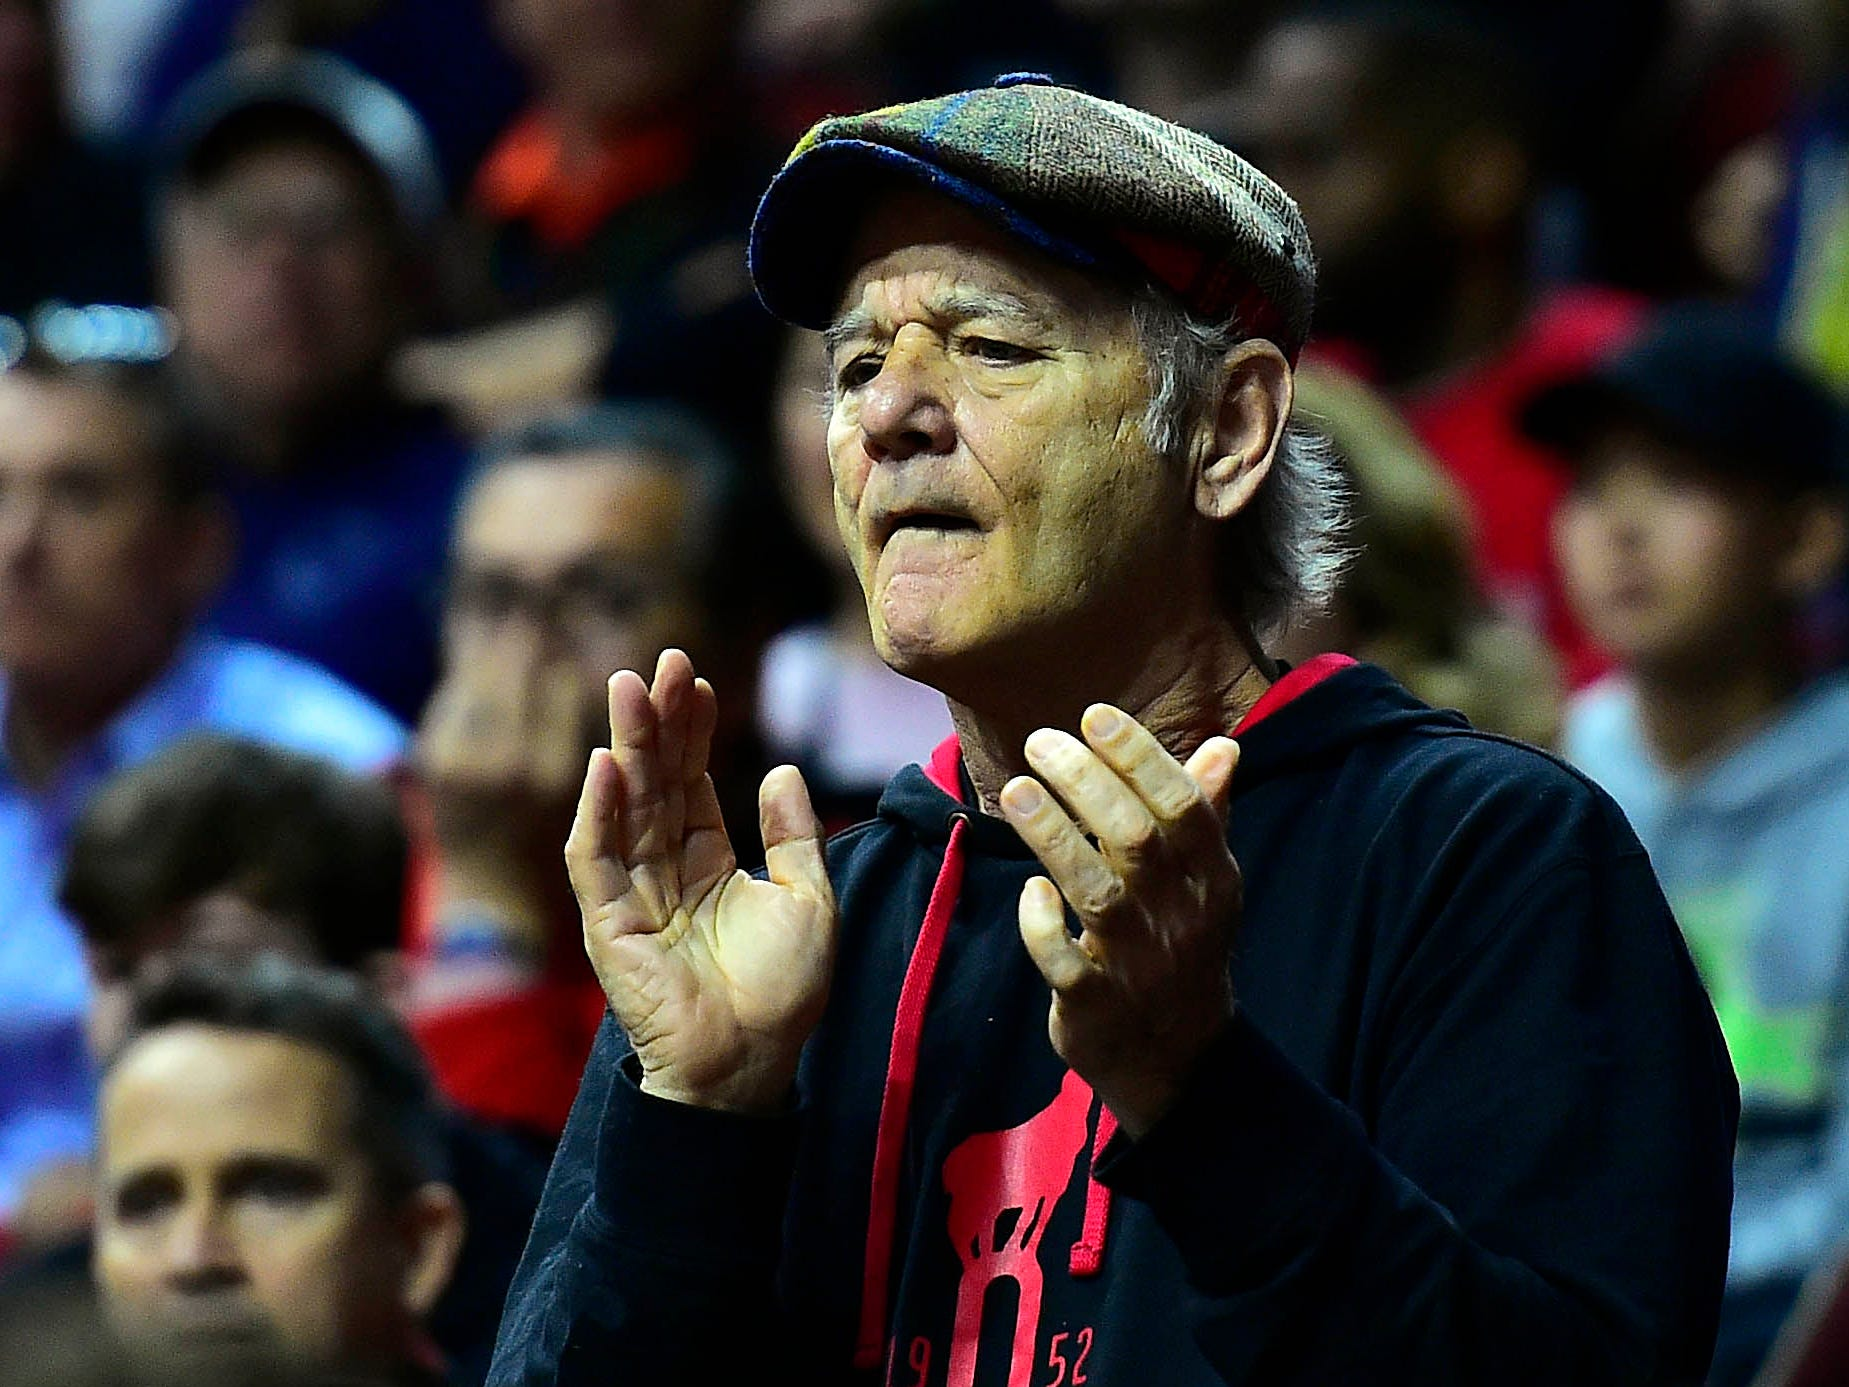 Come March, you are far more likely to find Bill Murray in the stands at NCAA basketball games than on a movie set. The Oscar nominee is also dad to Luke Murray, an assistant college b-ball coach in his first season at the University of Louisville. Here, he cheers on the Cardinals during their first-round game against Minnesota on March 21, 2019.